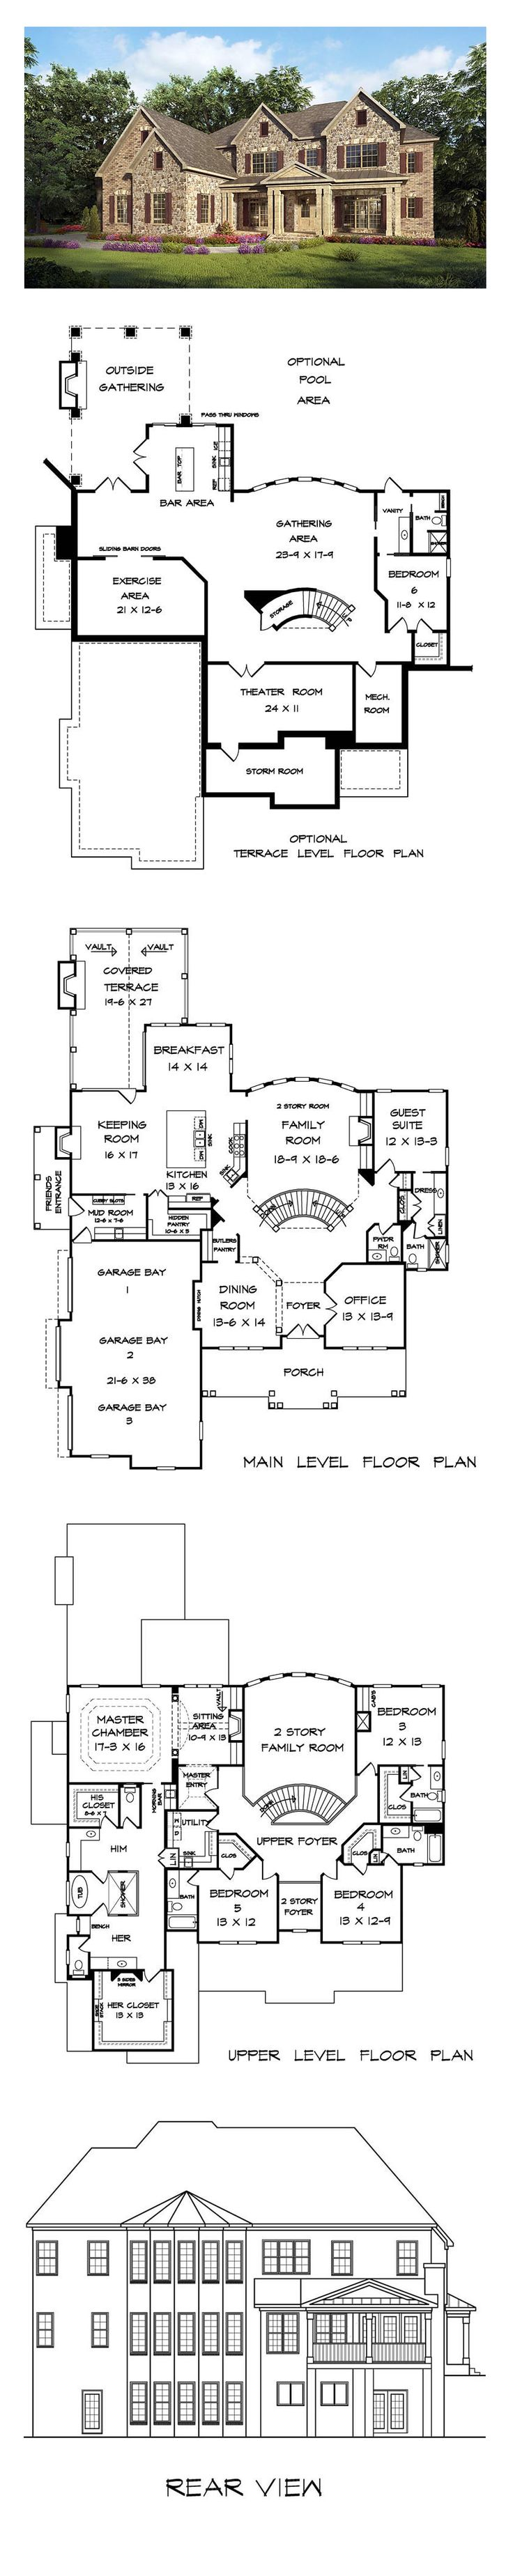 1000+ ideas about Little House Plans on Pinterest 2 bedroom ... - ^